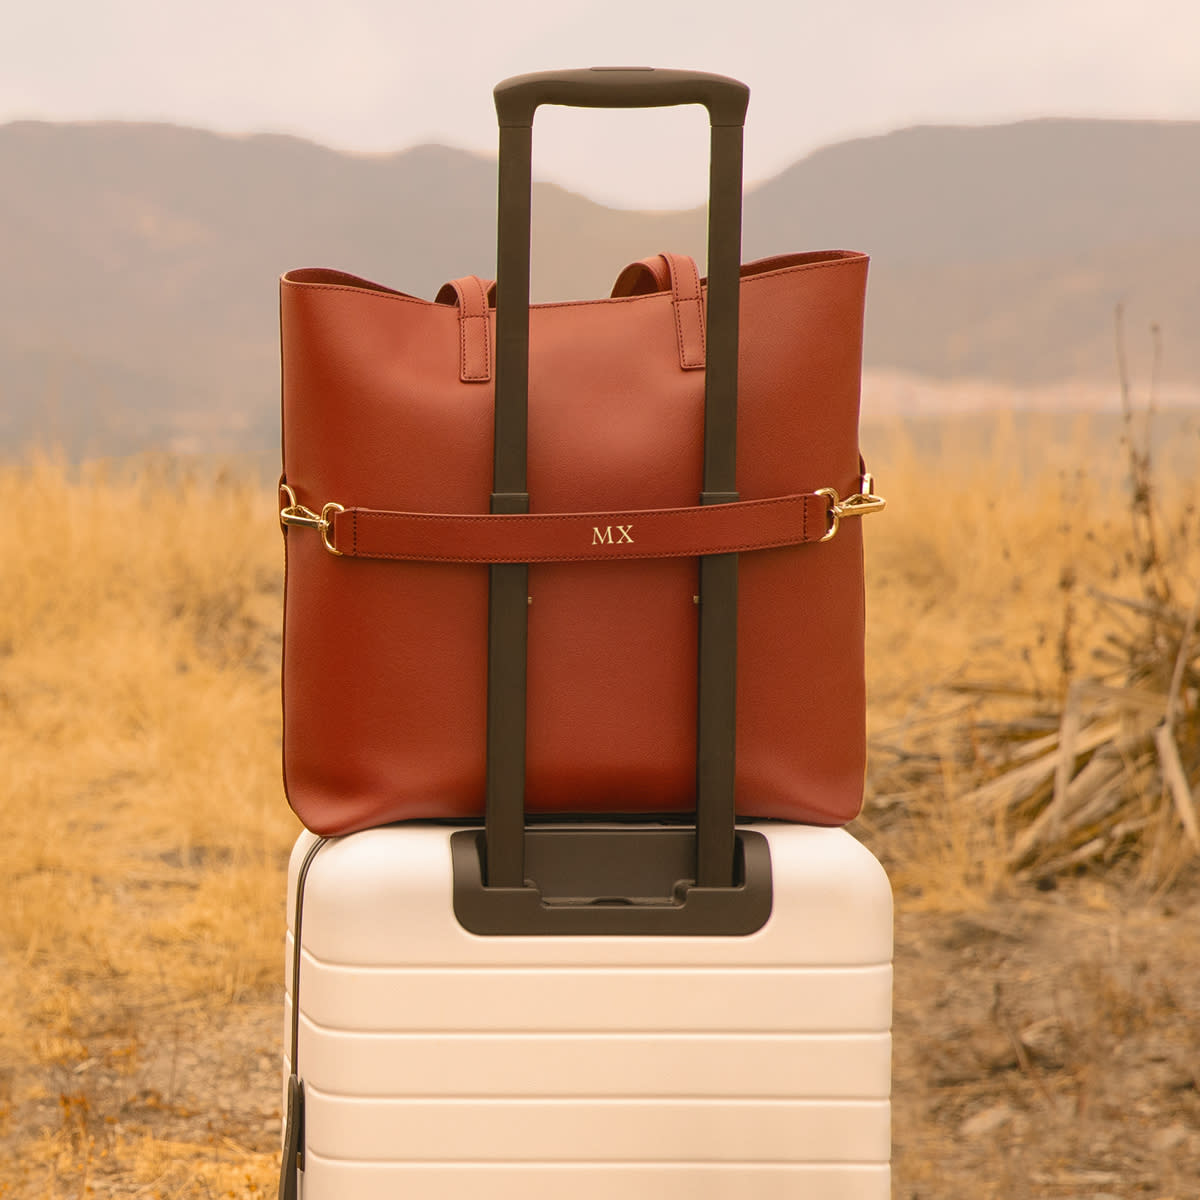 A luggage set seen in a field with a leather tote bag strapped on a white hard-sided carry-on suitcase.